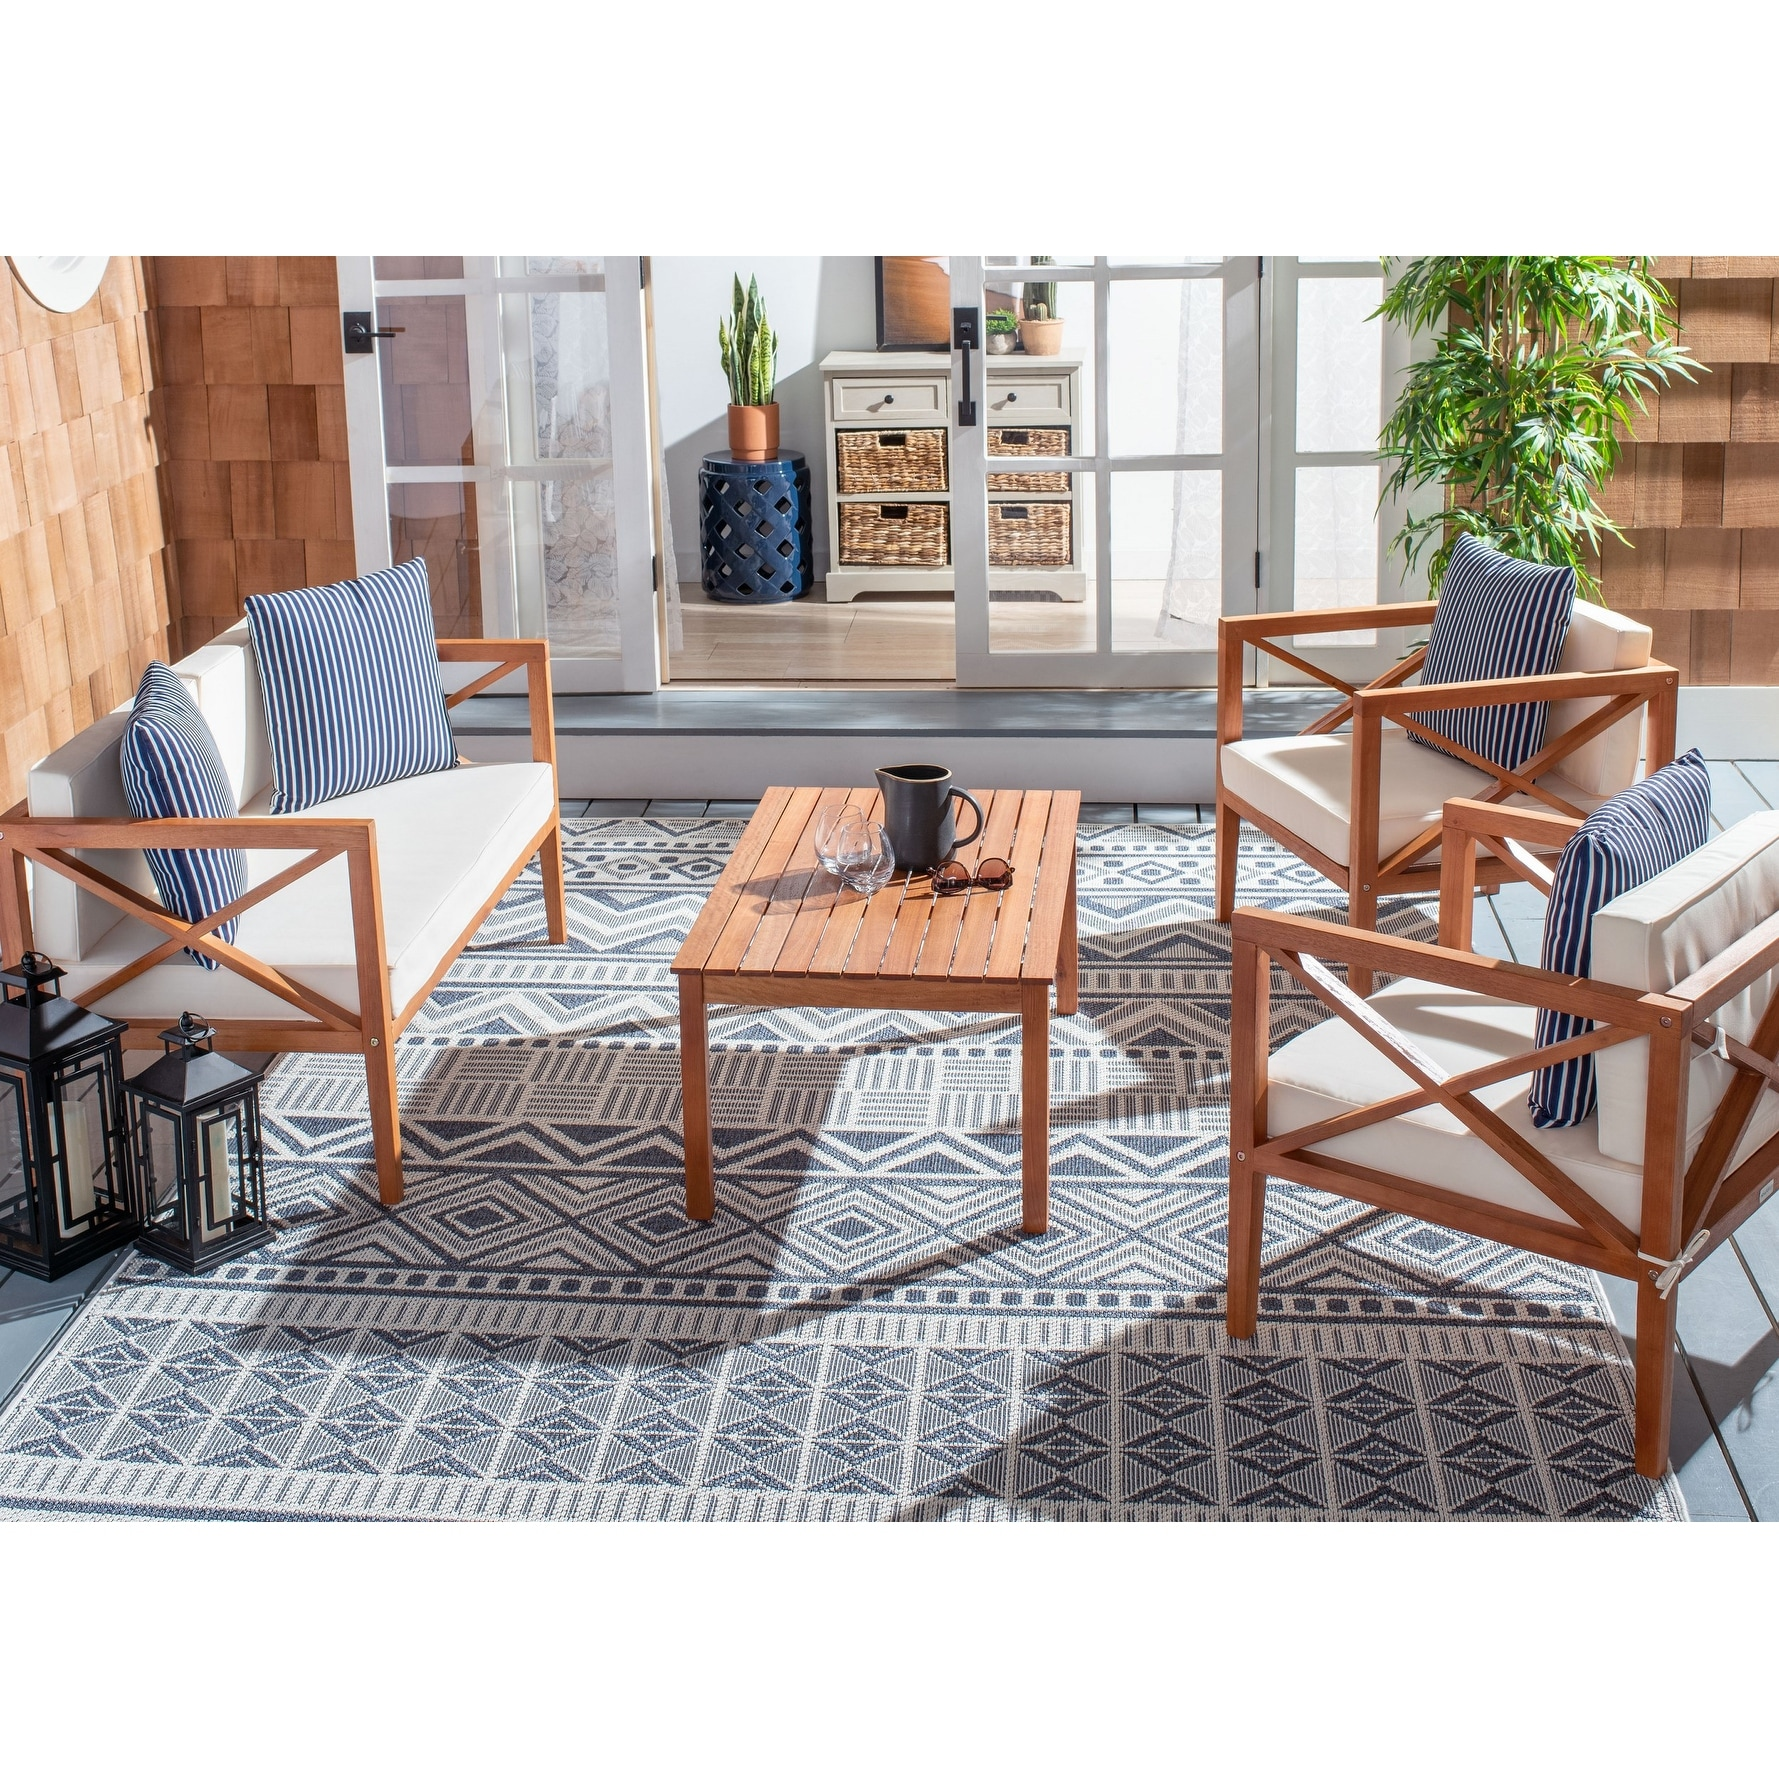 Safavieh Outdoor Living Montez 4 Piece Set with Accent | eBay on Safavieh Outdoor Living Montez 4 Piece Set id=67878